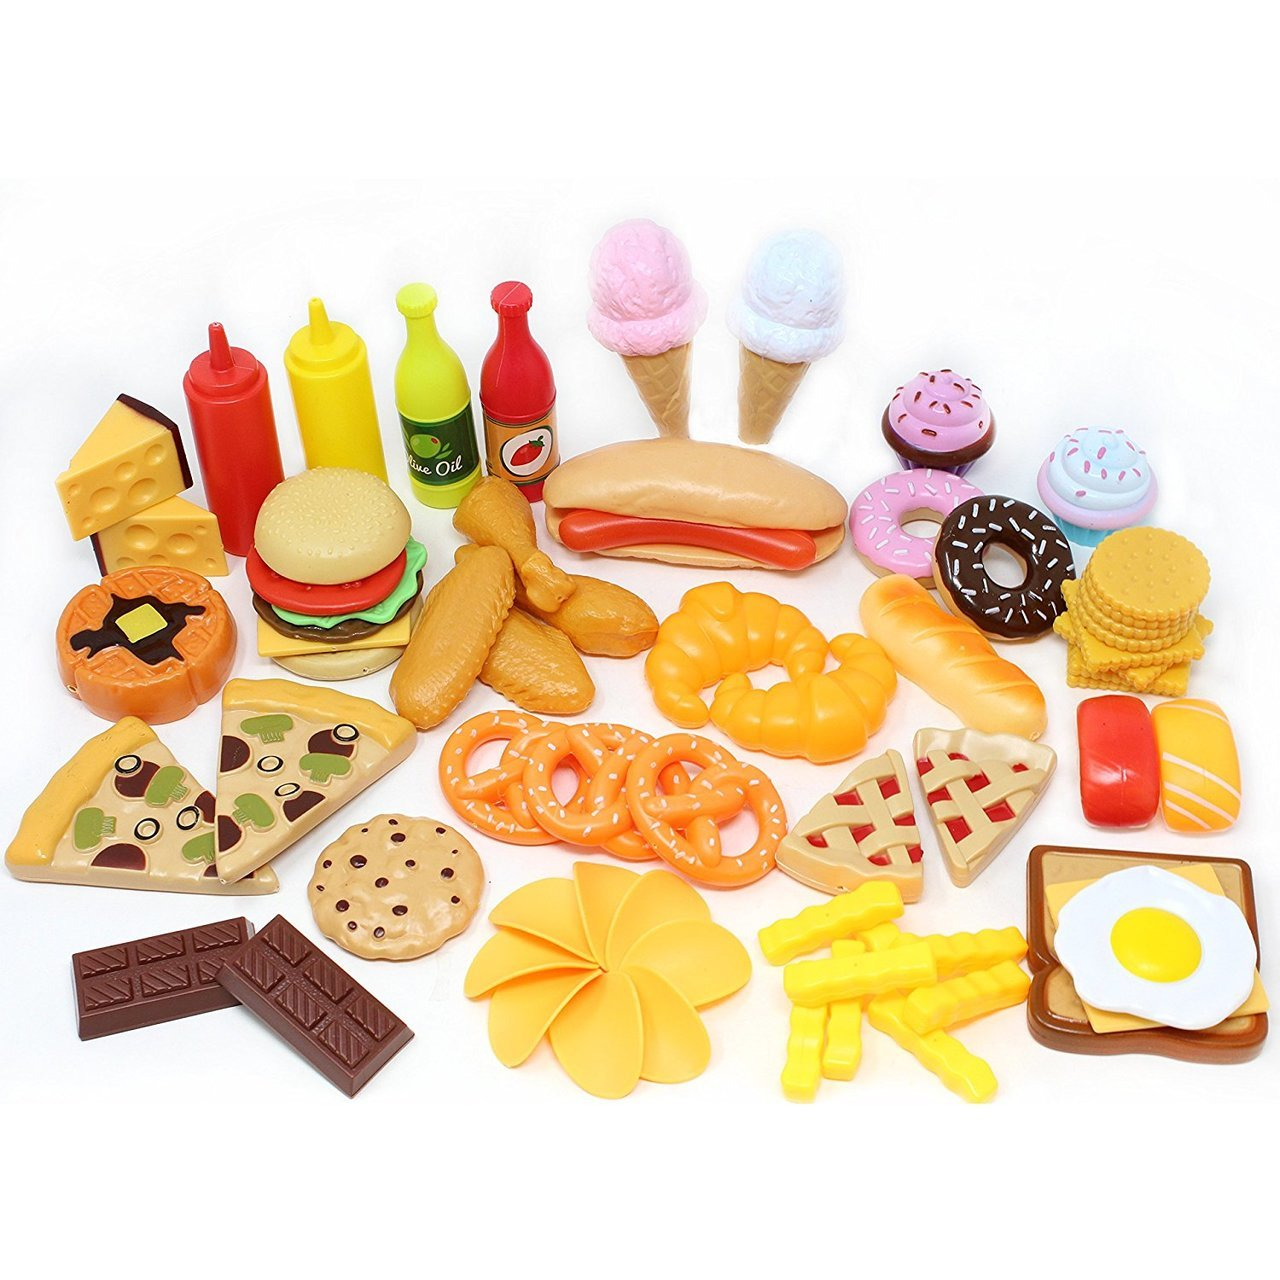 Play Food Set Pretend Food Toys